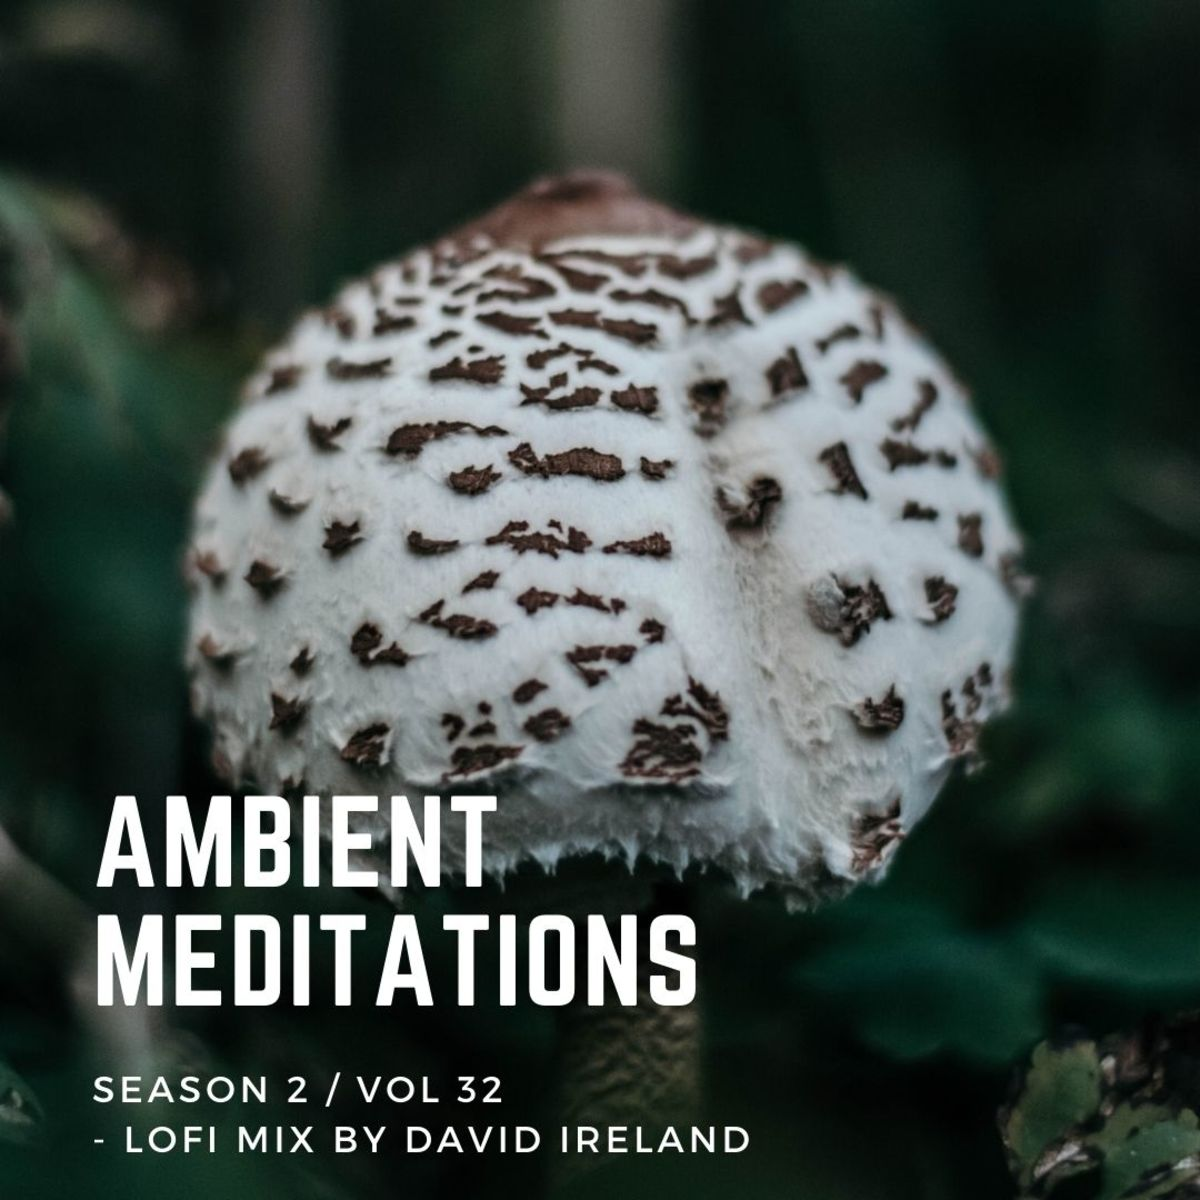 Ambient Meditations Mix LoFi Mix